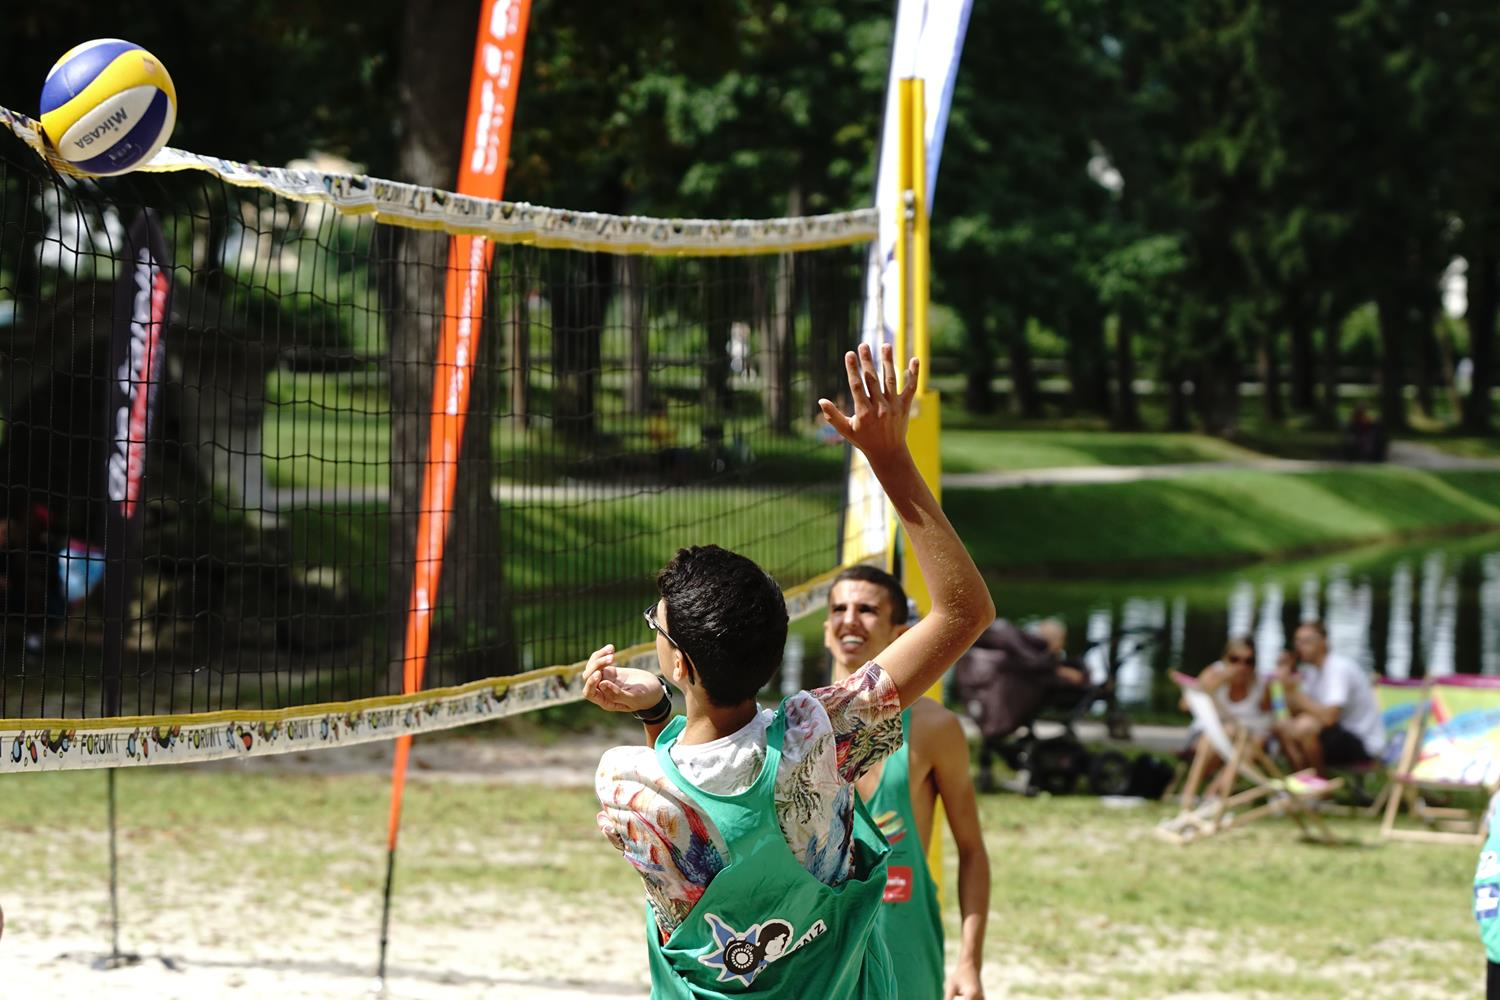 20160904_FMT_SSAS_ Vollyball_KJ (37) (Copy)